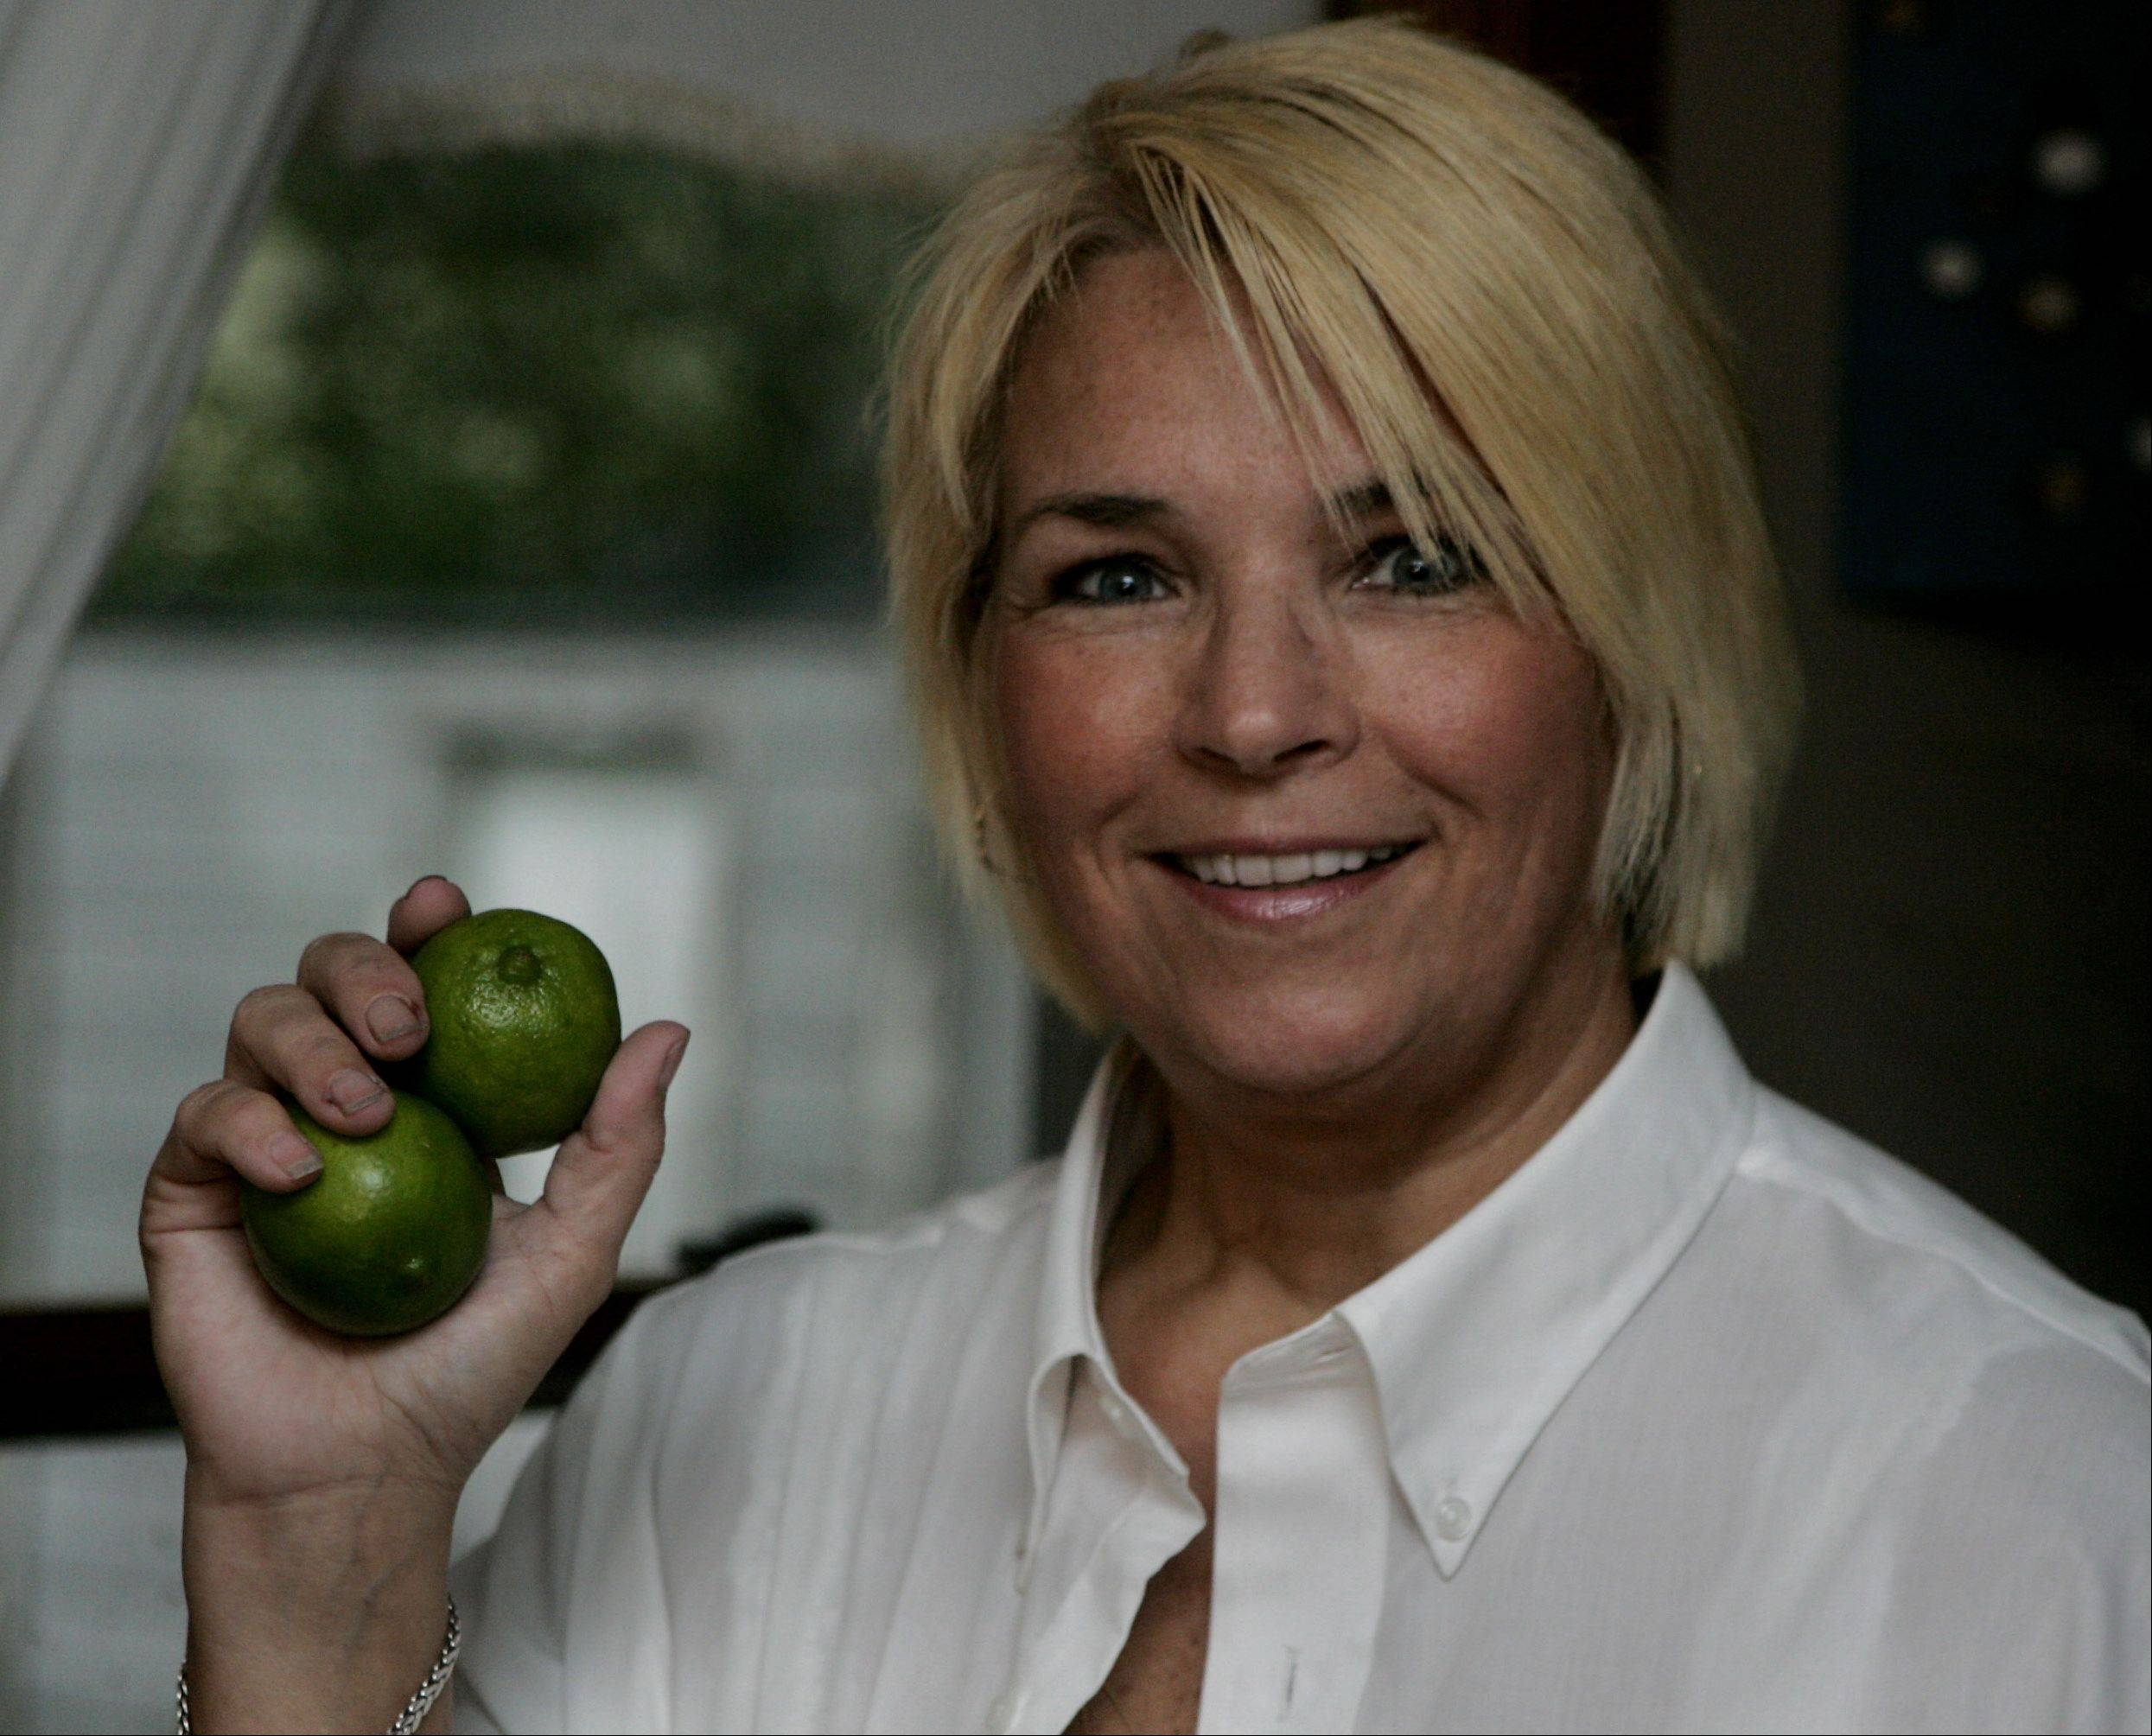 Cook of the Week Challenge contestant Cate Brusenbach of Antioch with her favorite ingredient, limes.